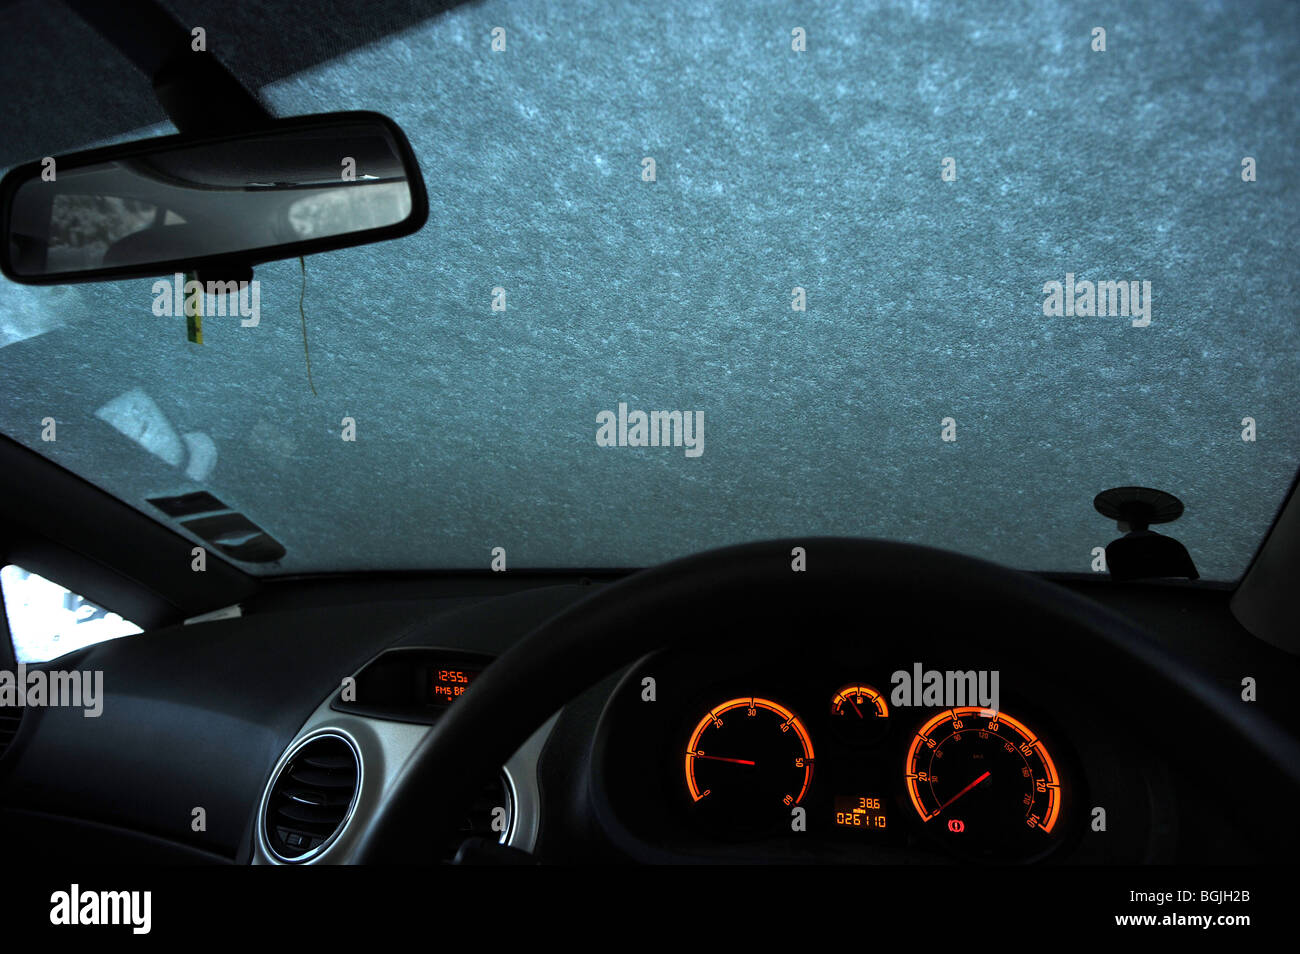 Snow covers the windscreen of a car - Stock Image